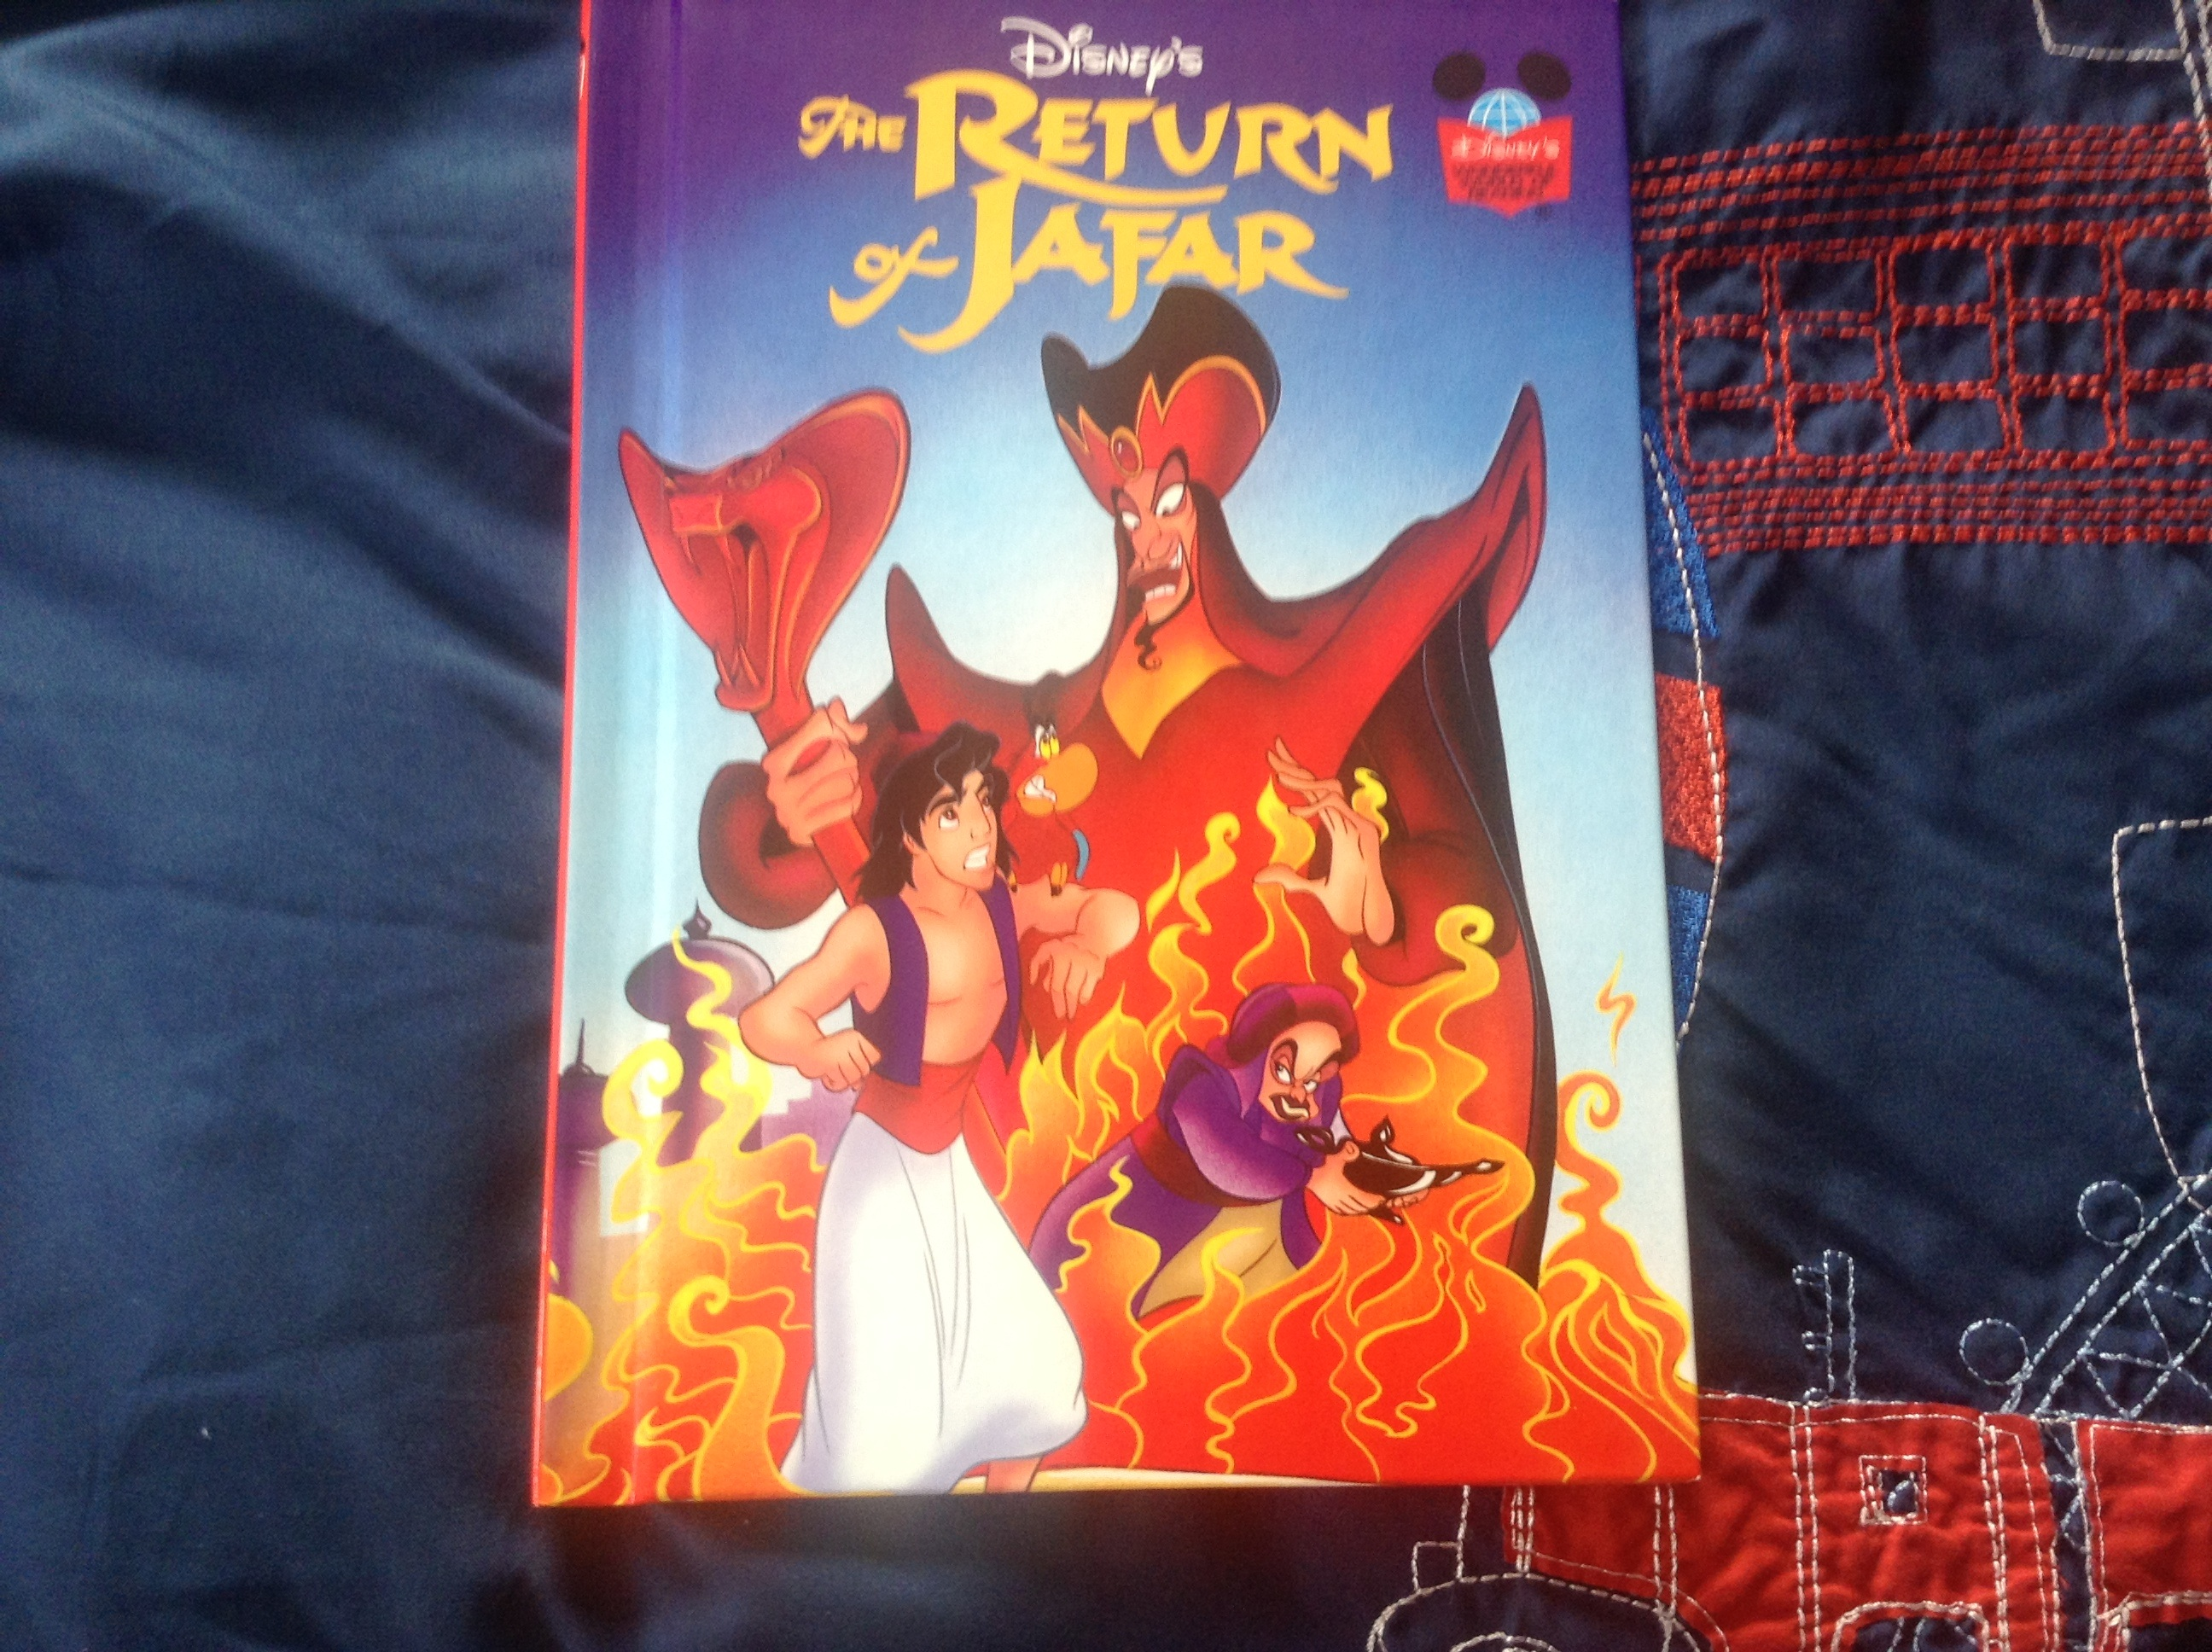 The Return of Jafar Book (1995)